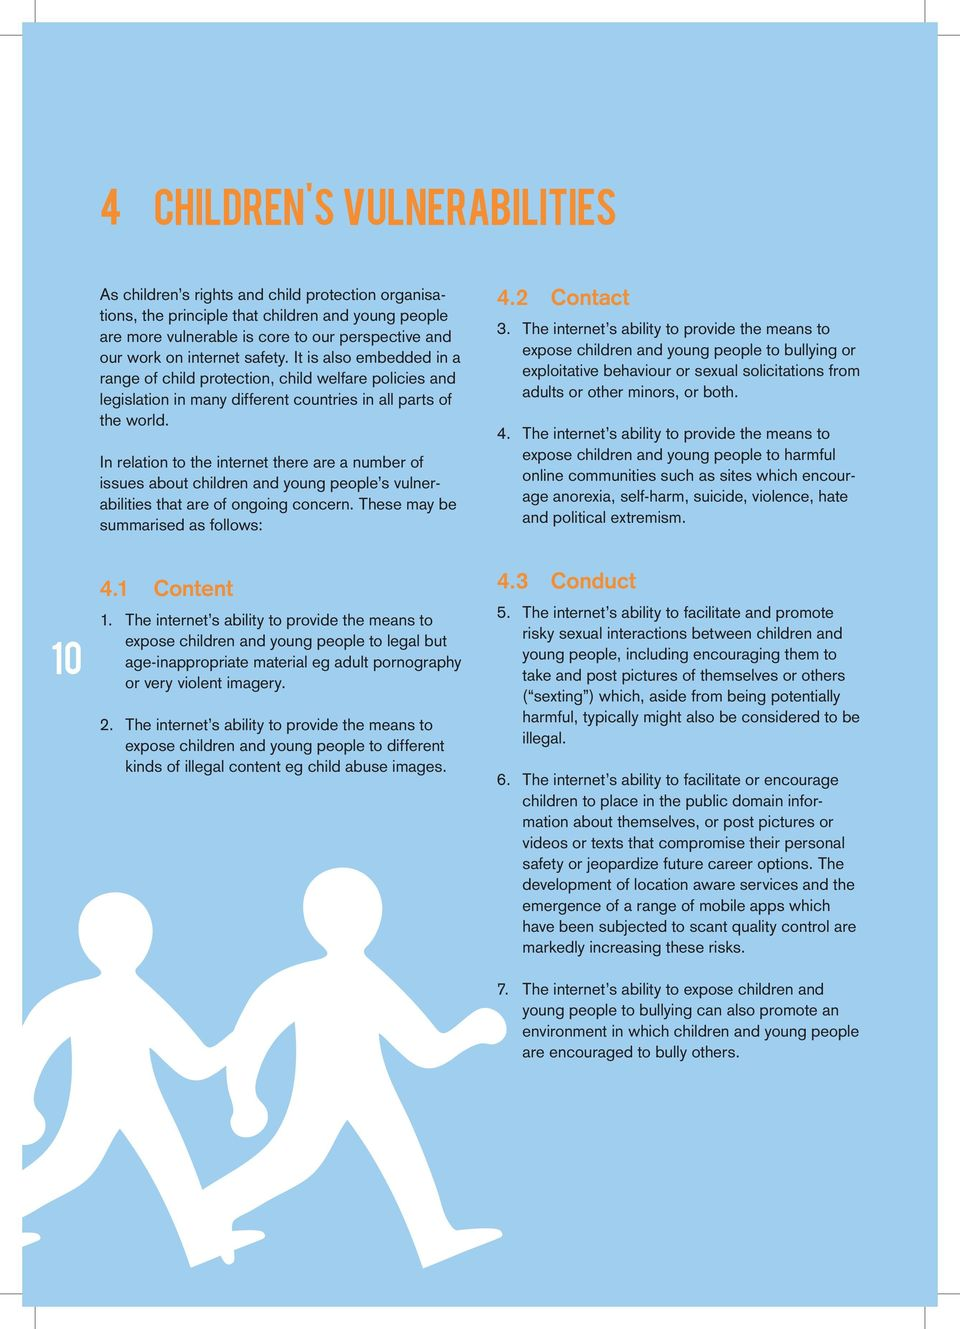 In relation to the internet there are a number of issues about children and young people s vulnerabilities that are of ongoing concern. These may be summarised as follows: 4.2 Contact 3.